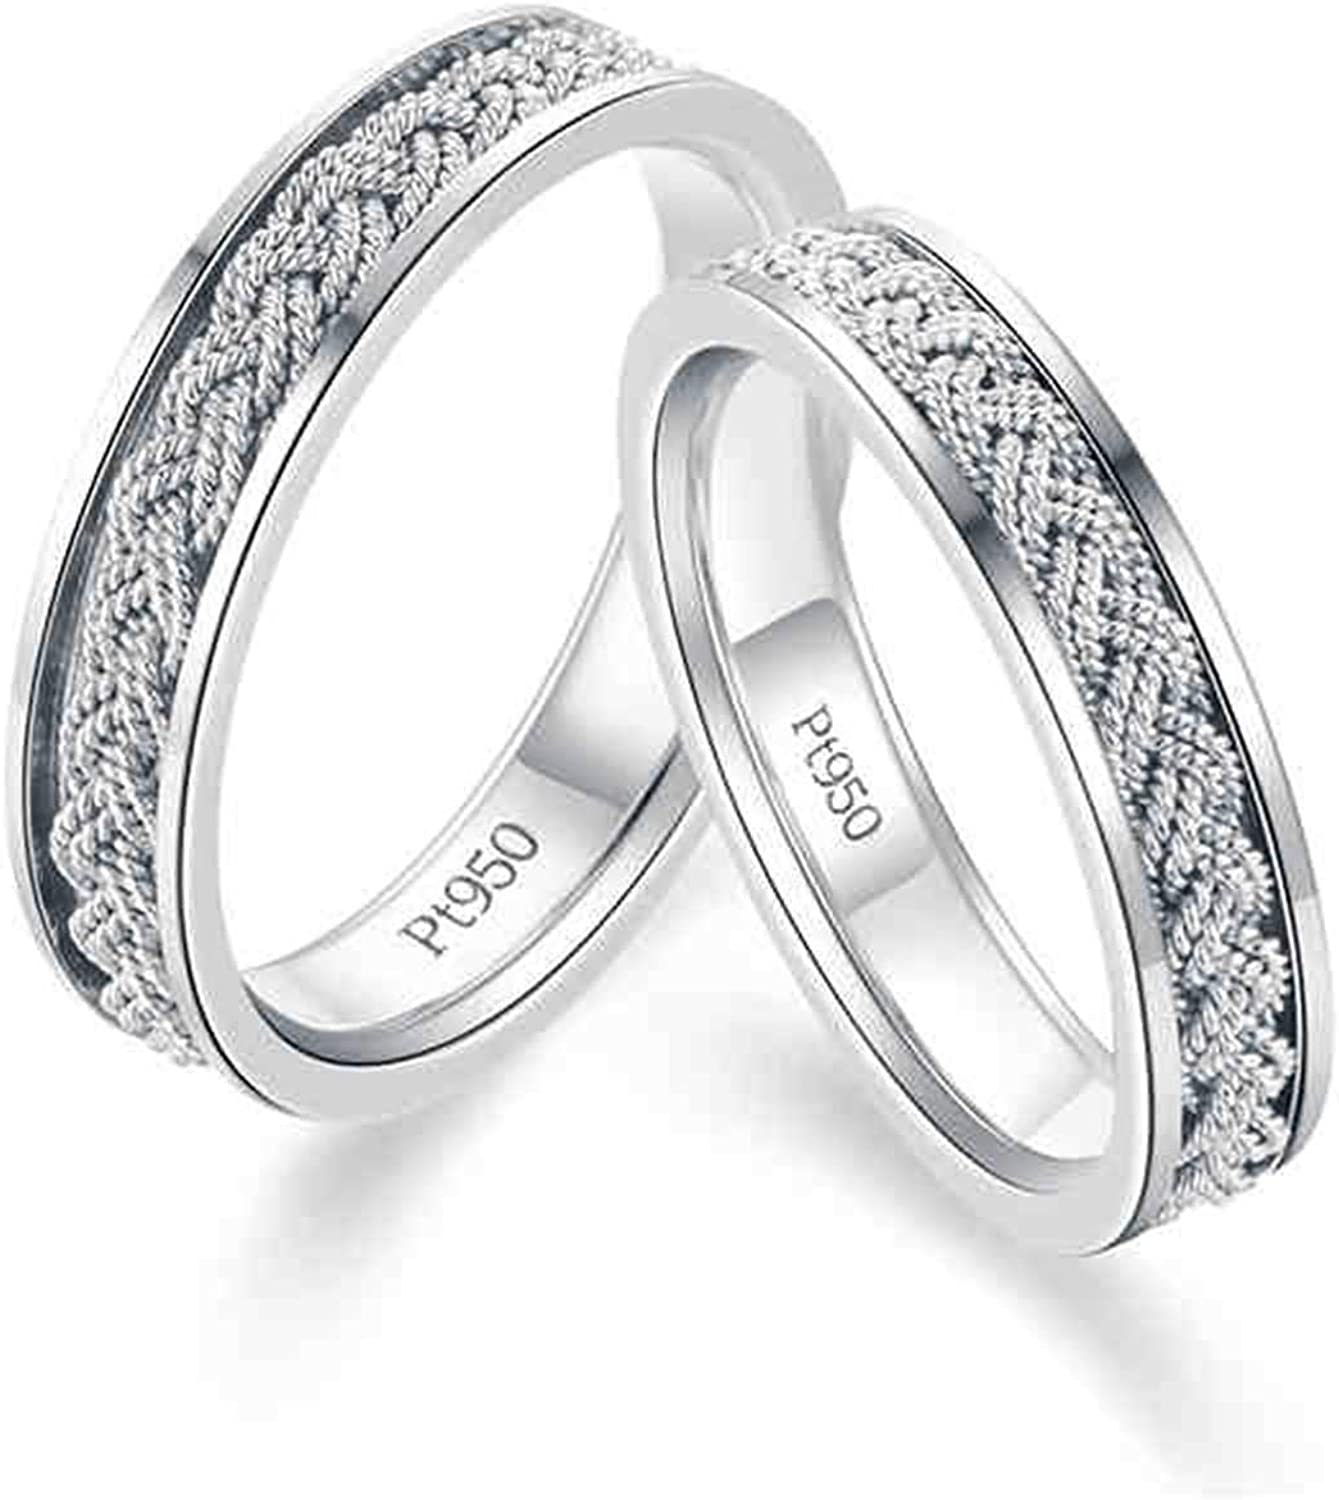 Flat Rectangular PT950 Square Edged Platinum Ring His and Hers Bands